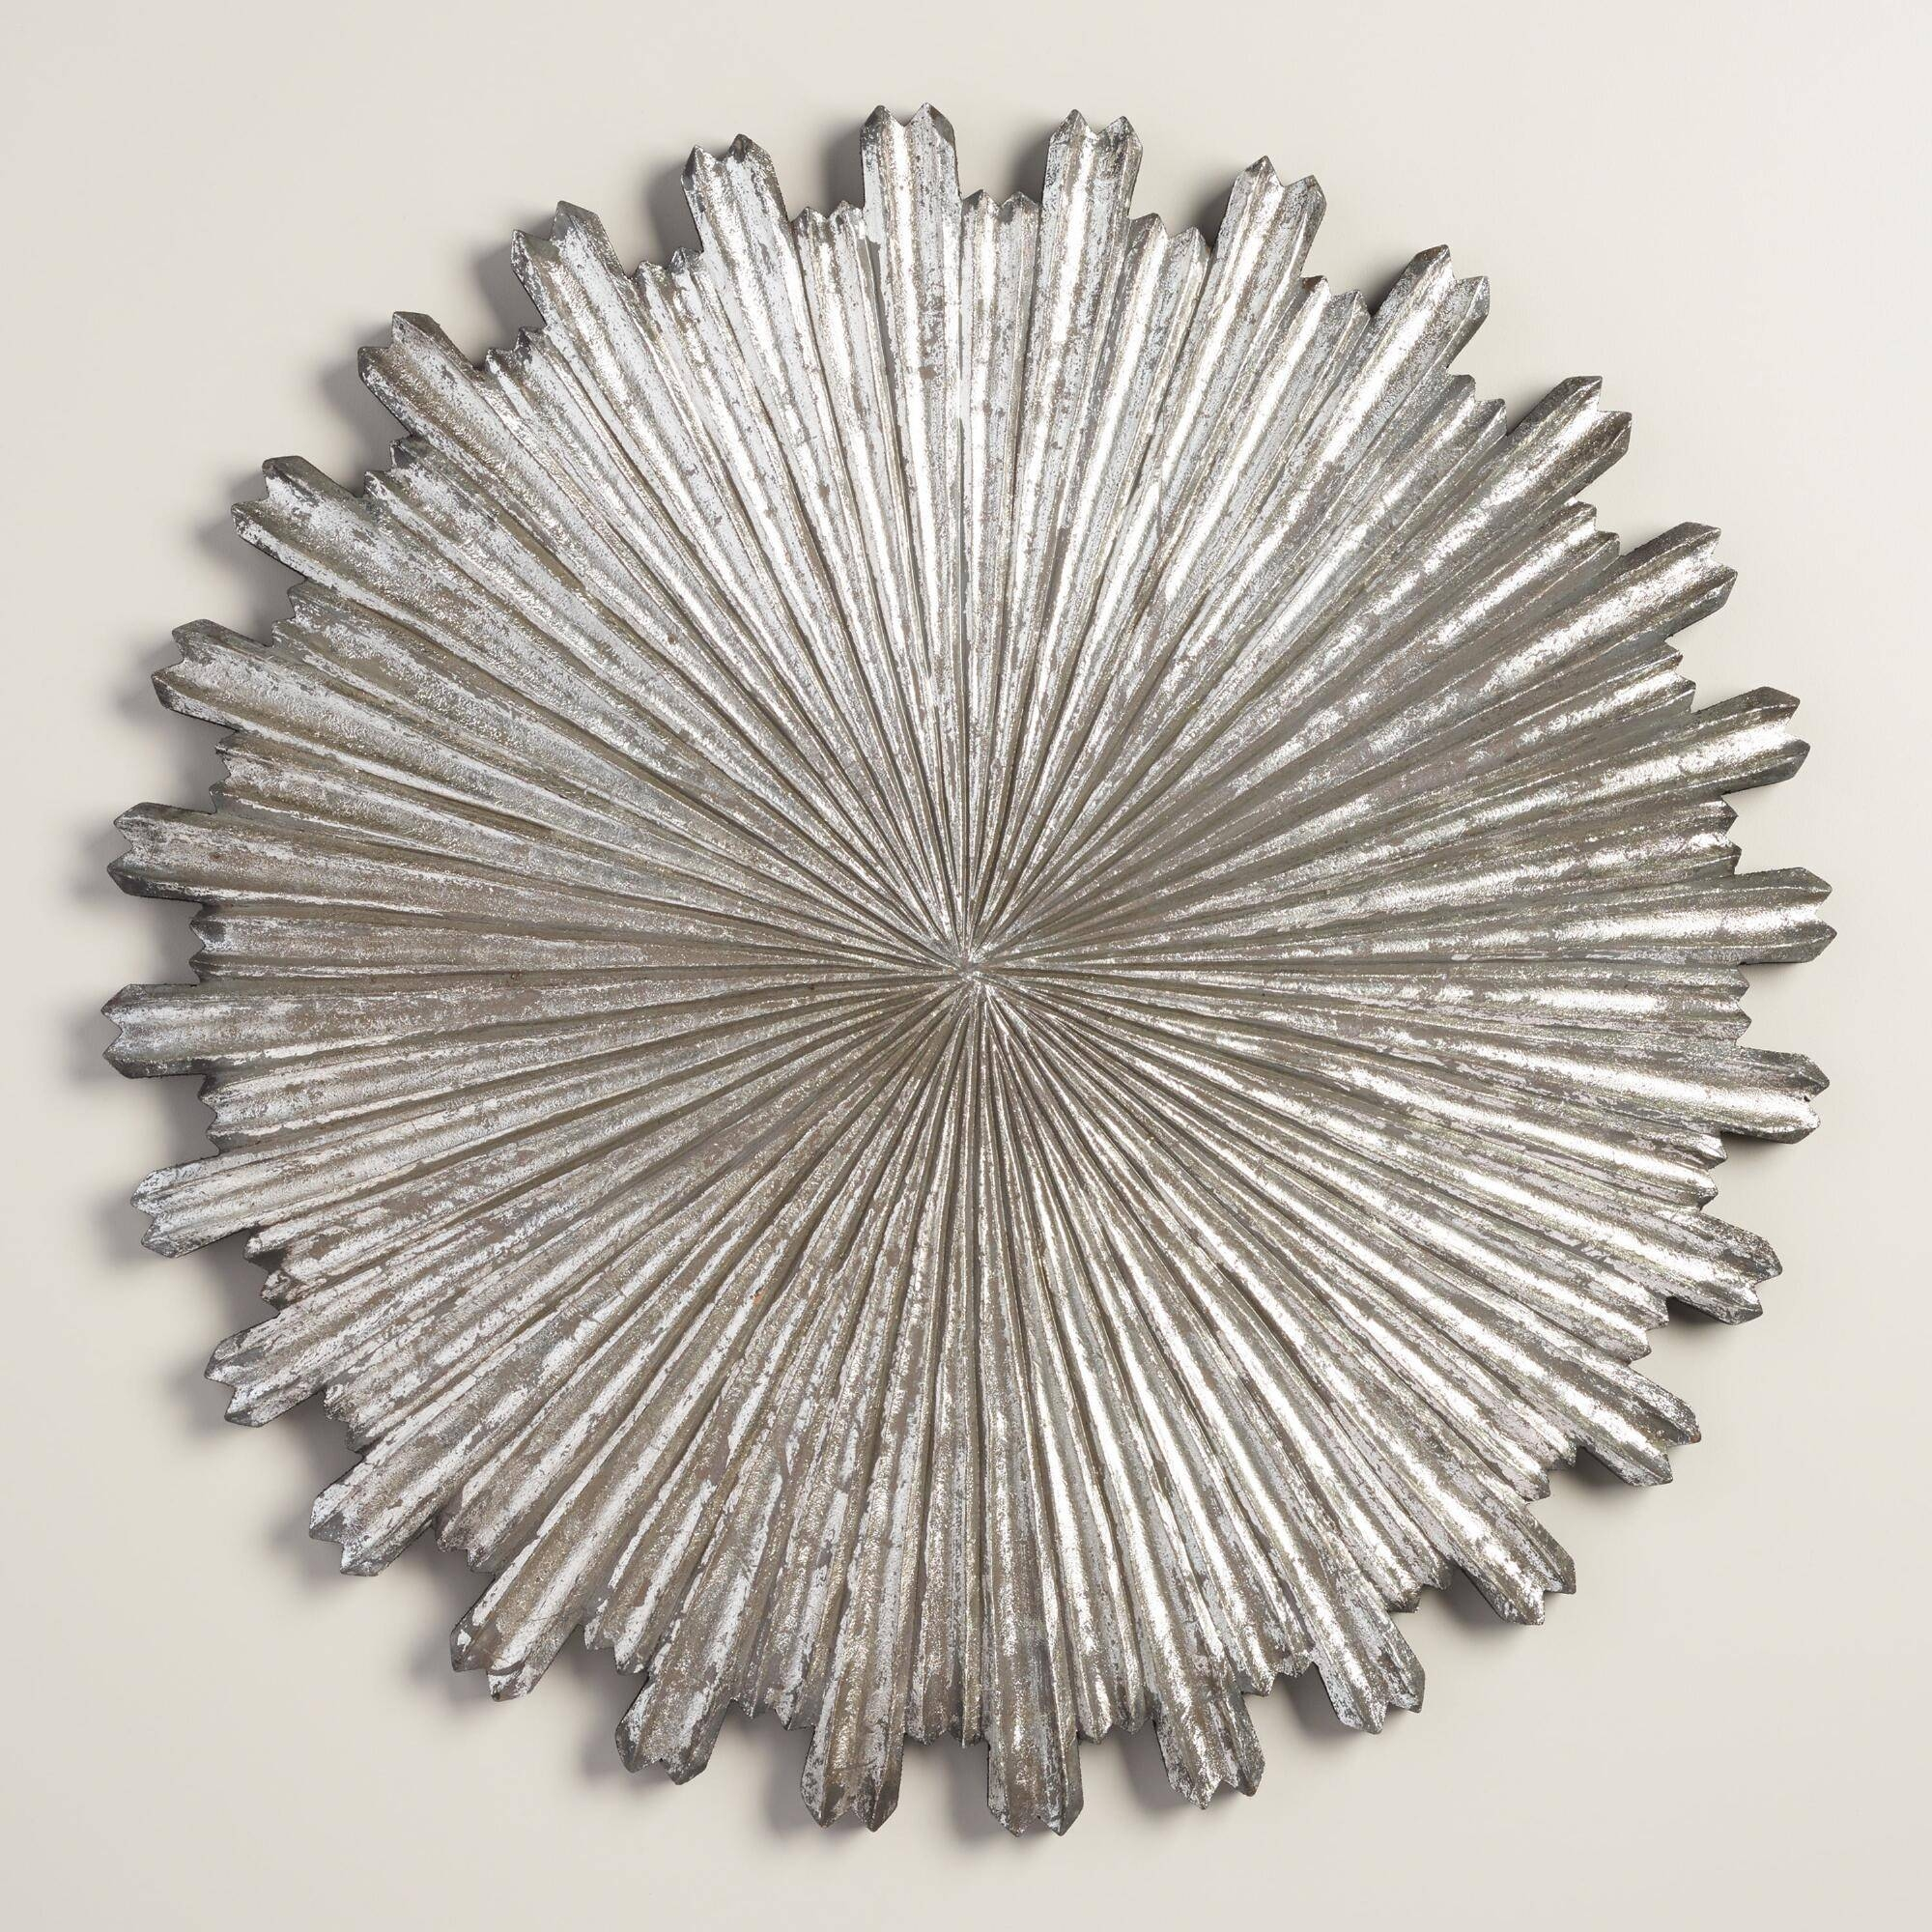 Wall Art Designs: Silver Metal Wall Art Silver Wall Decor On Metal Intended For Newest Sunburst Metal Wall Art (View 16 of 20)